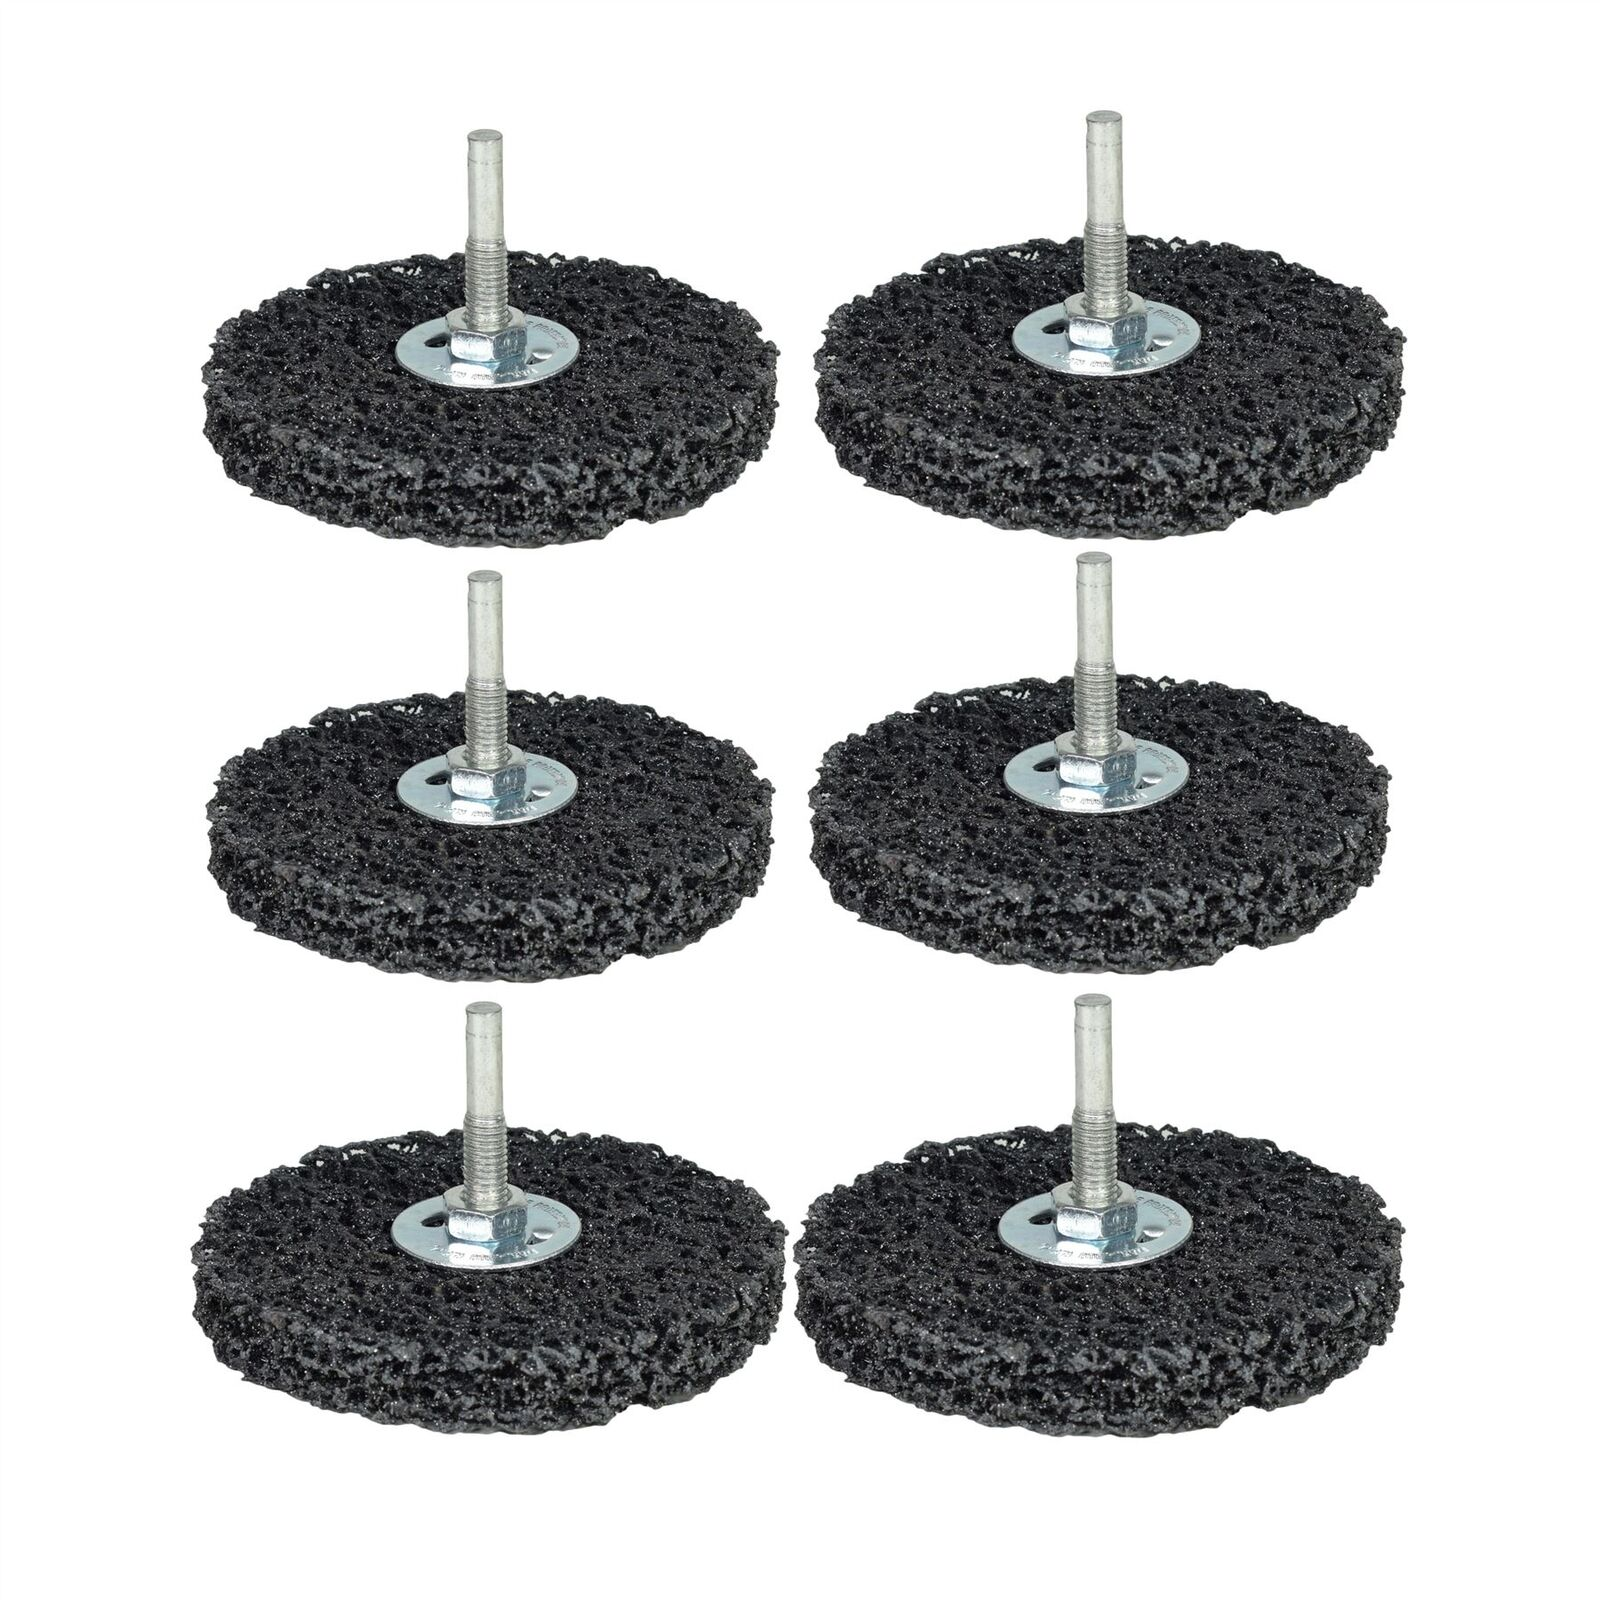 6 x 100mm Rust Paint Welding Spatter Removal Clean And Strip Disc 6mm Shank